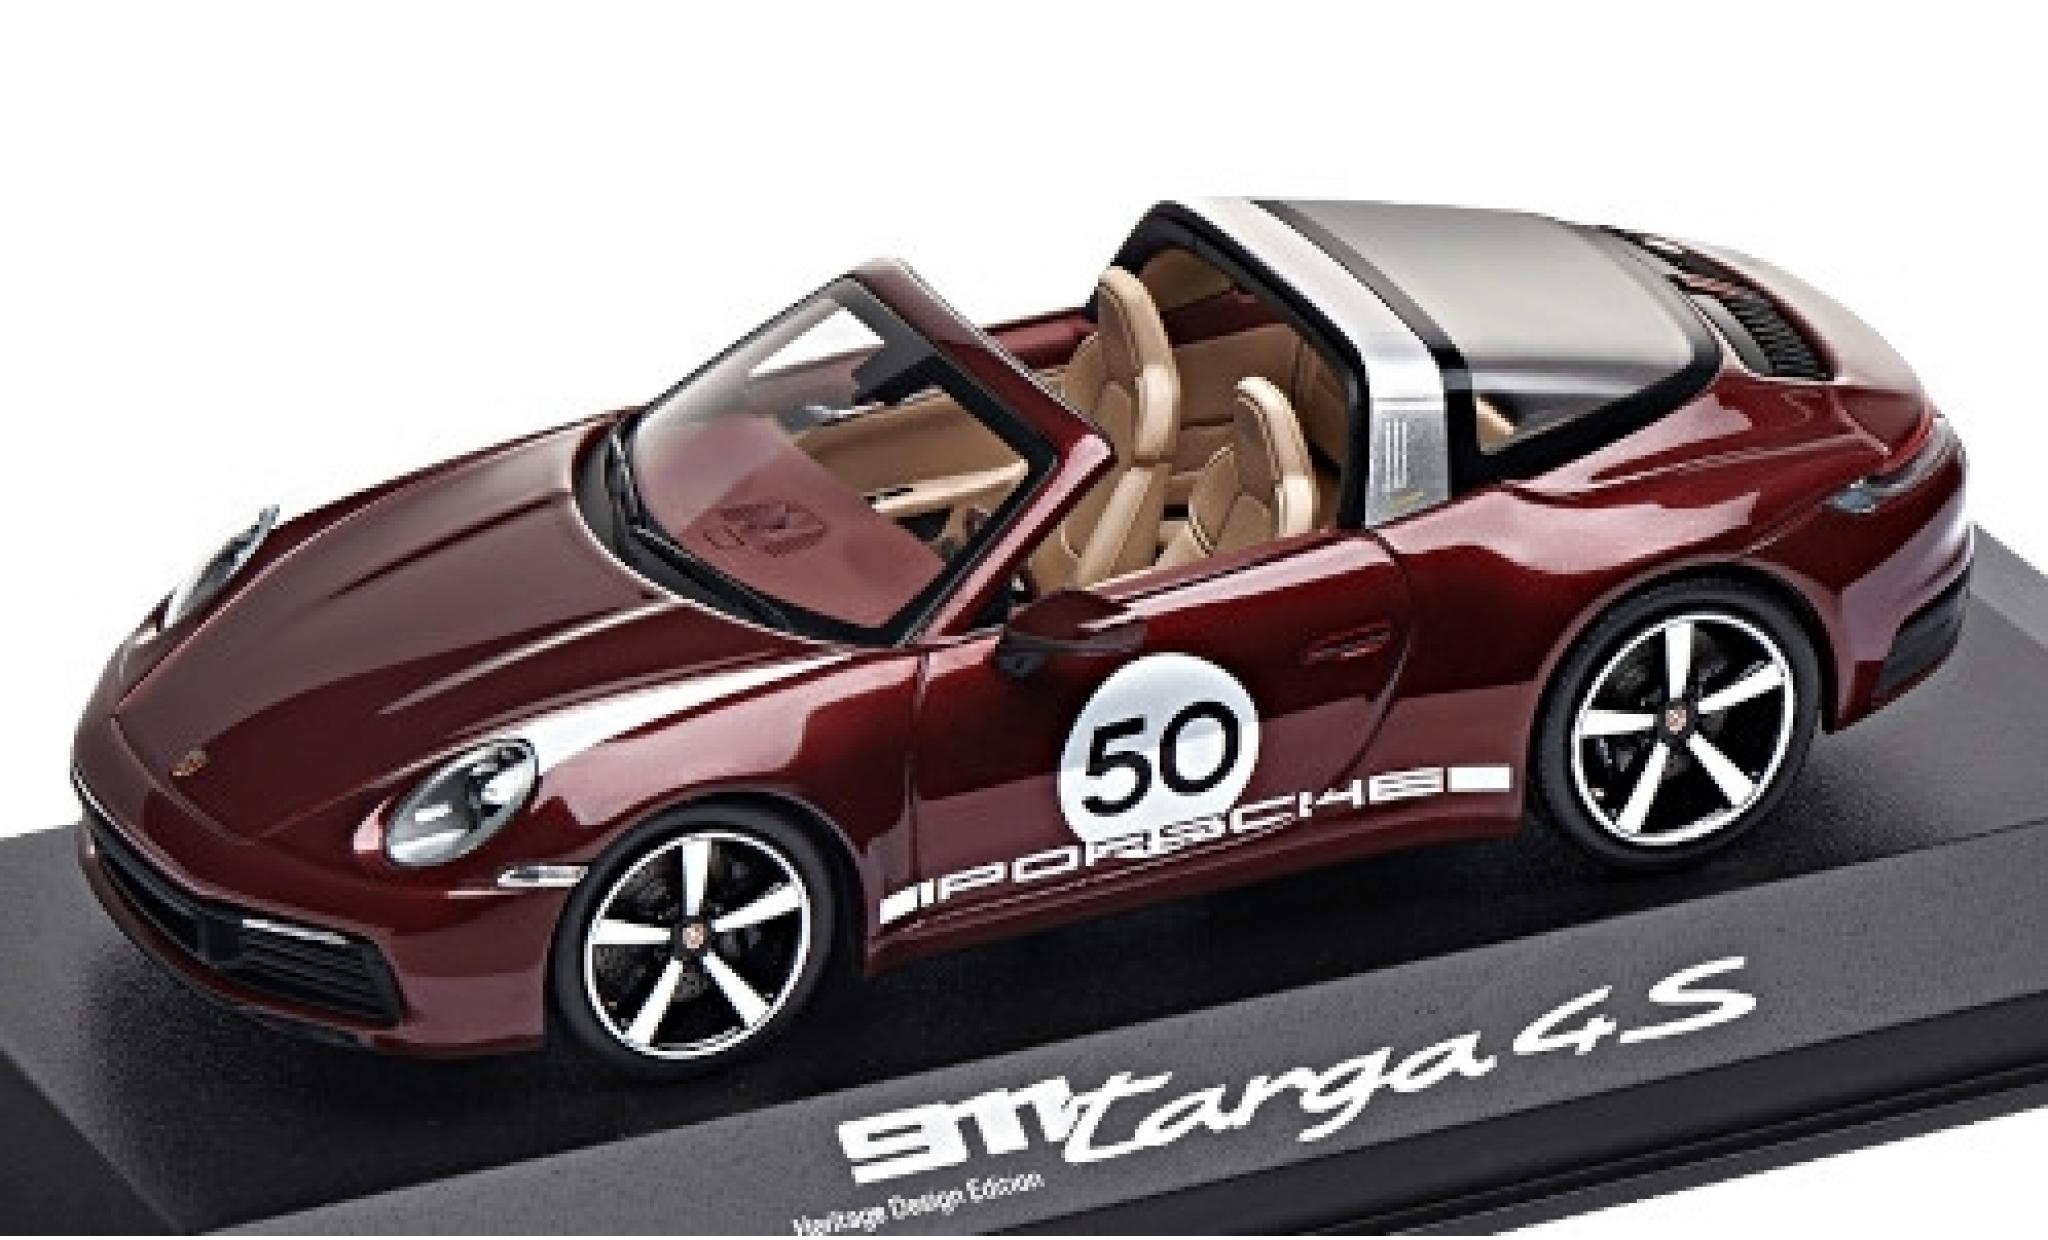 Porsche 911 1/43 I Minichamps Targa 4S metallise red/Dekor No.50 Heritage Design Edition